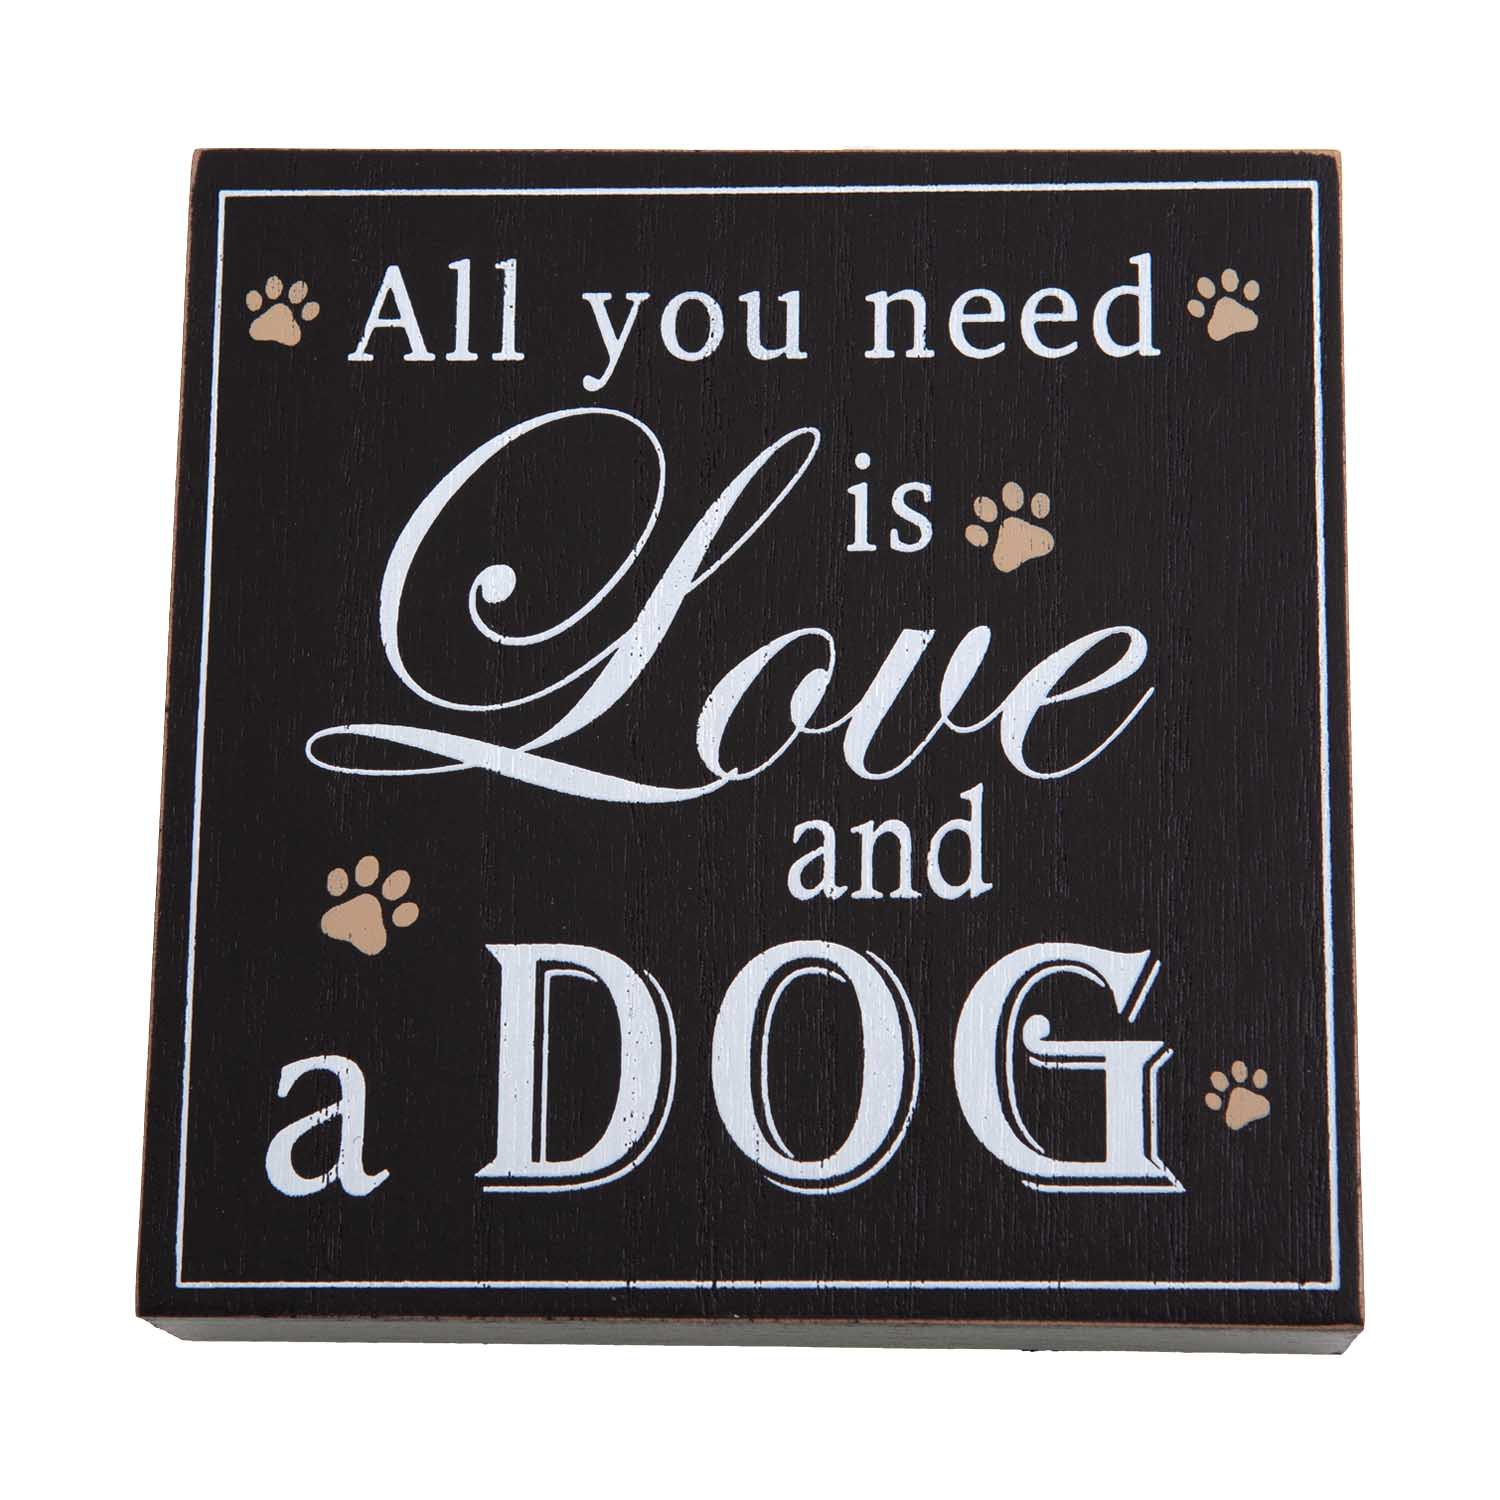 Dog Lover Gifts available at Dog Krazy Gifts – All You Need Is Love And A Dog Art Block Sign, Just Part Of Our Collection Of Signs Available At www.dogkrazygifts.co.uk